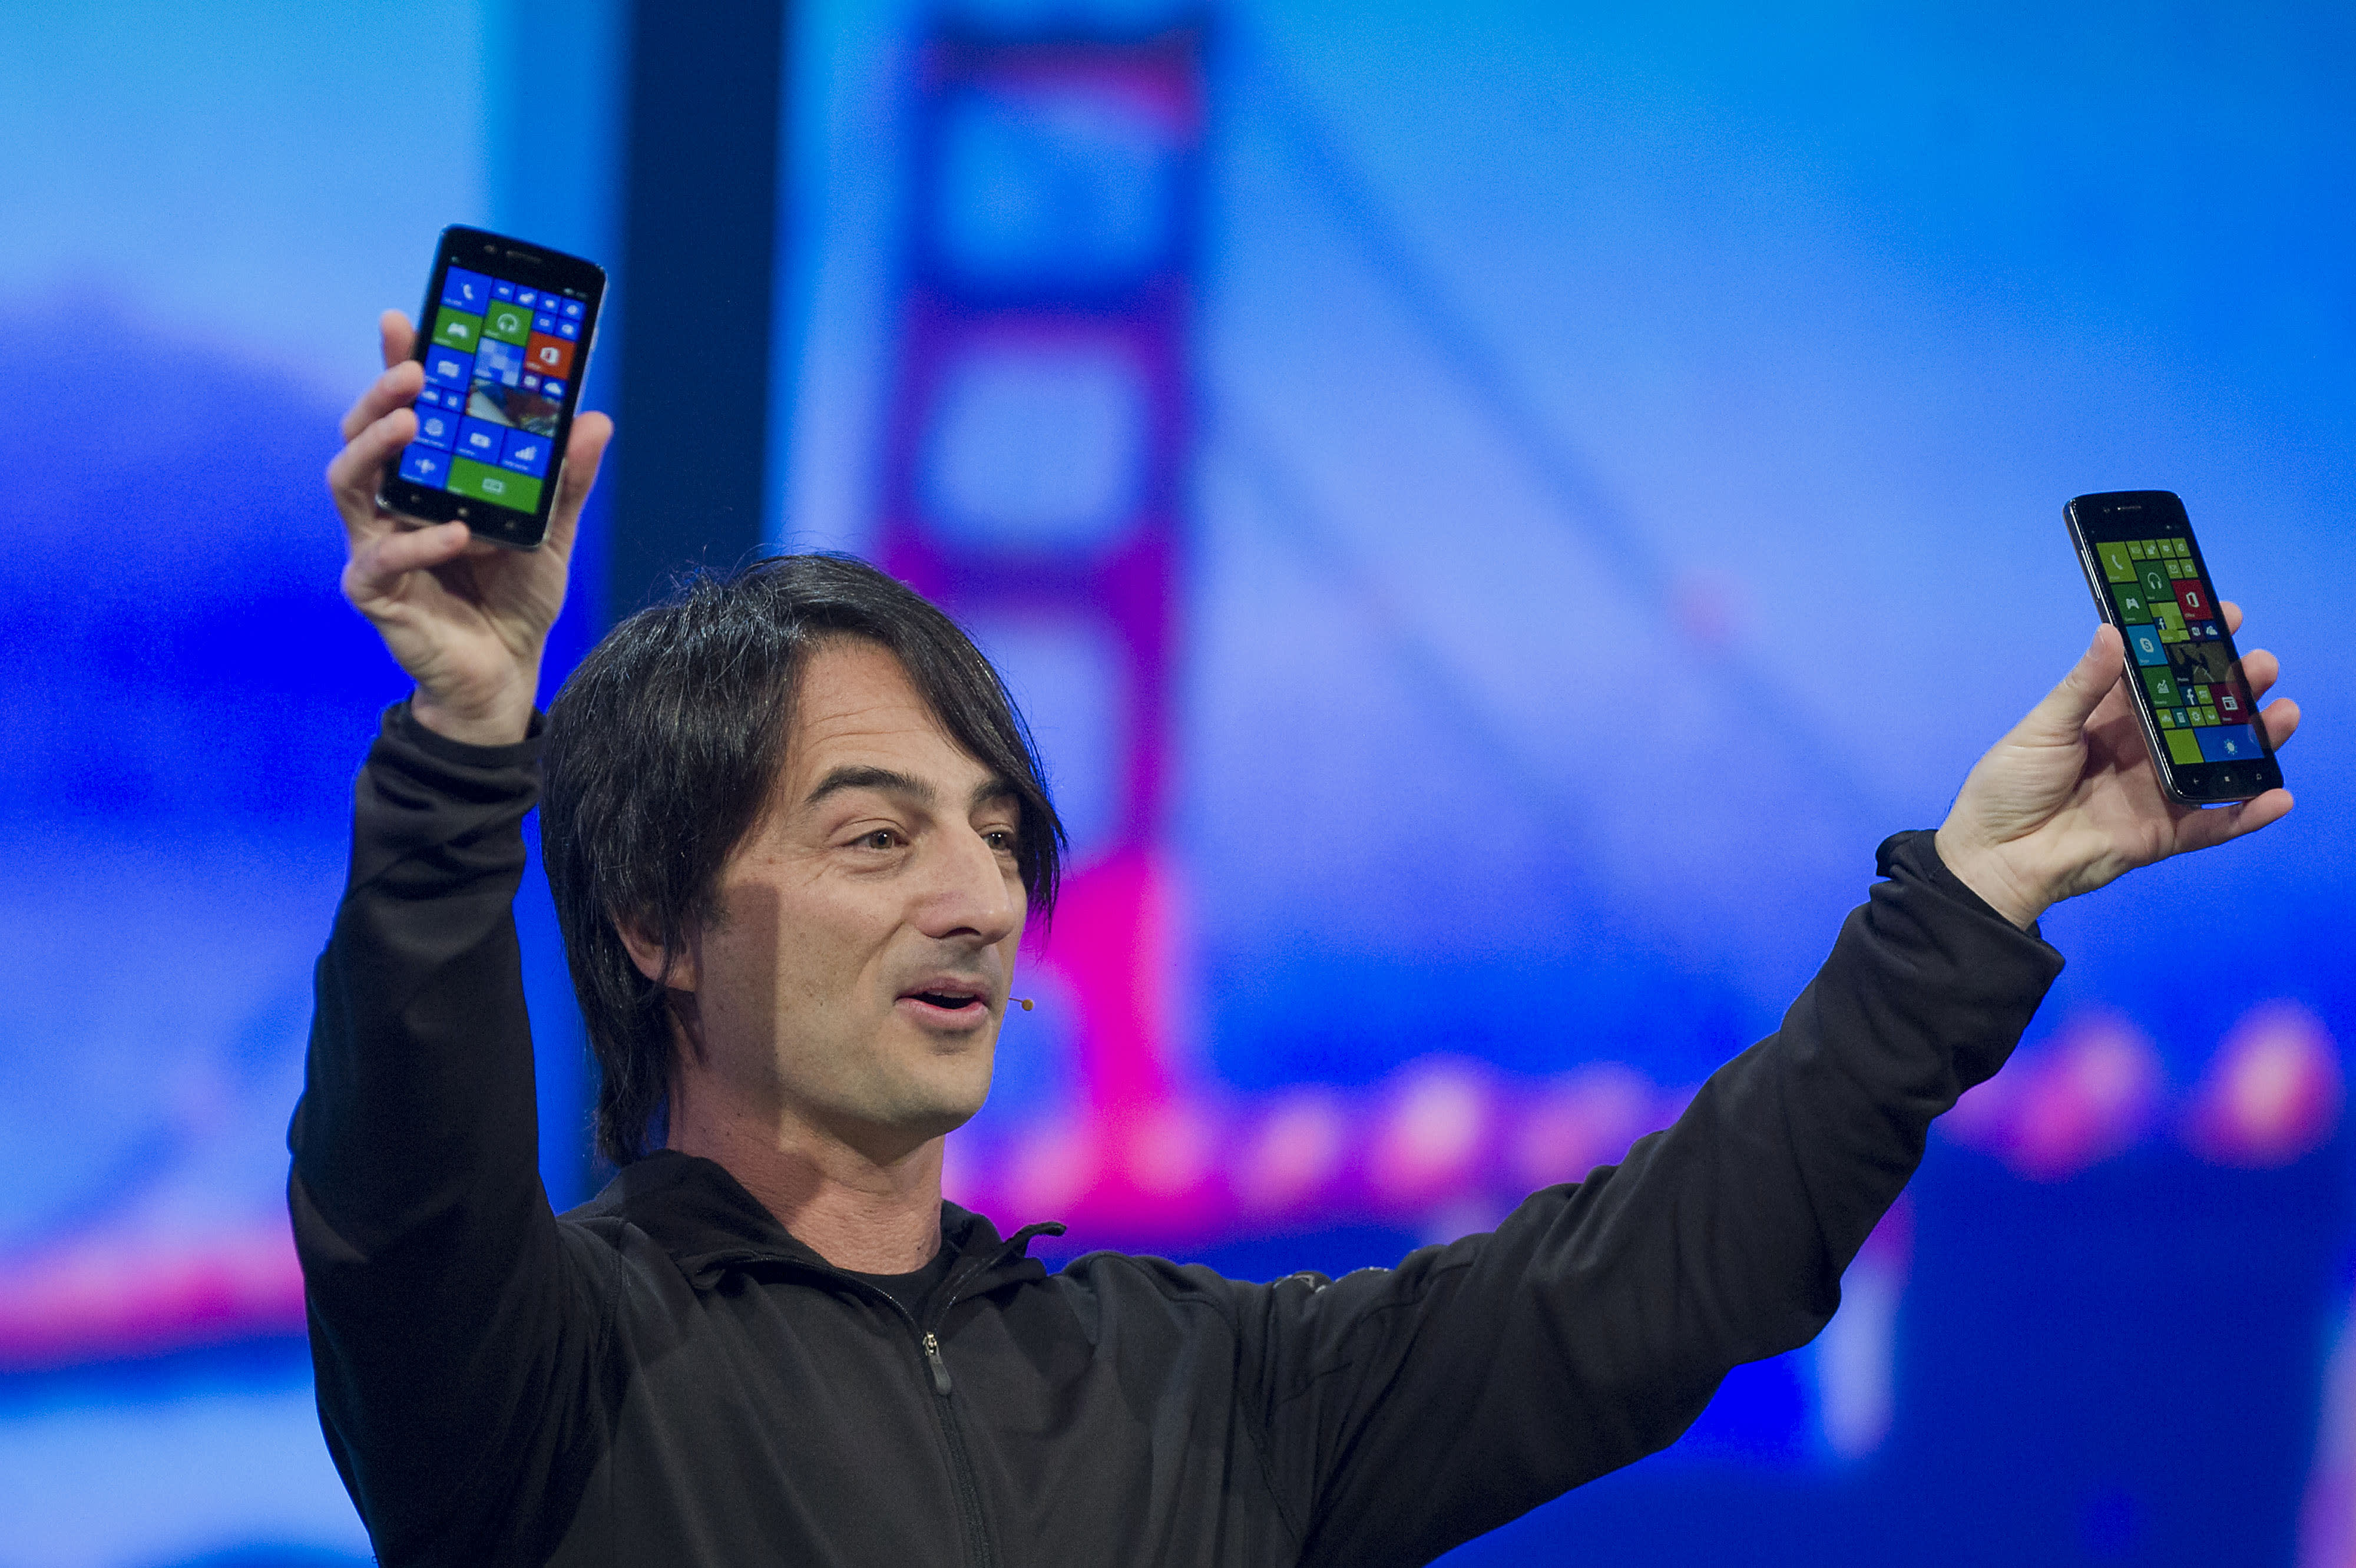 Microsoft ending Windows 10 mobile, says switch to iPhone or